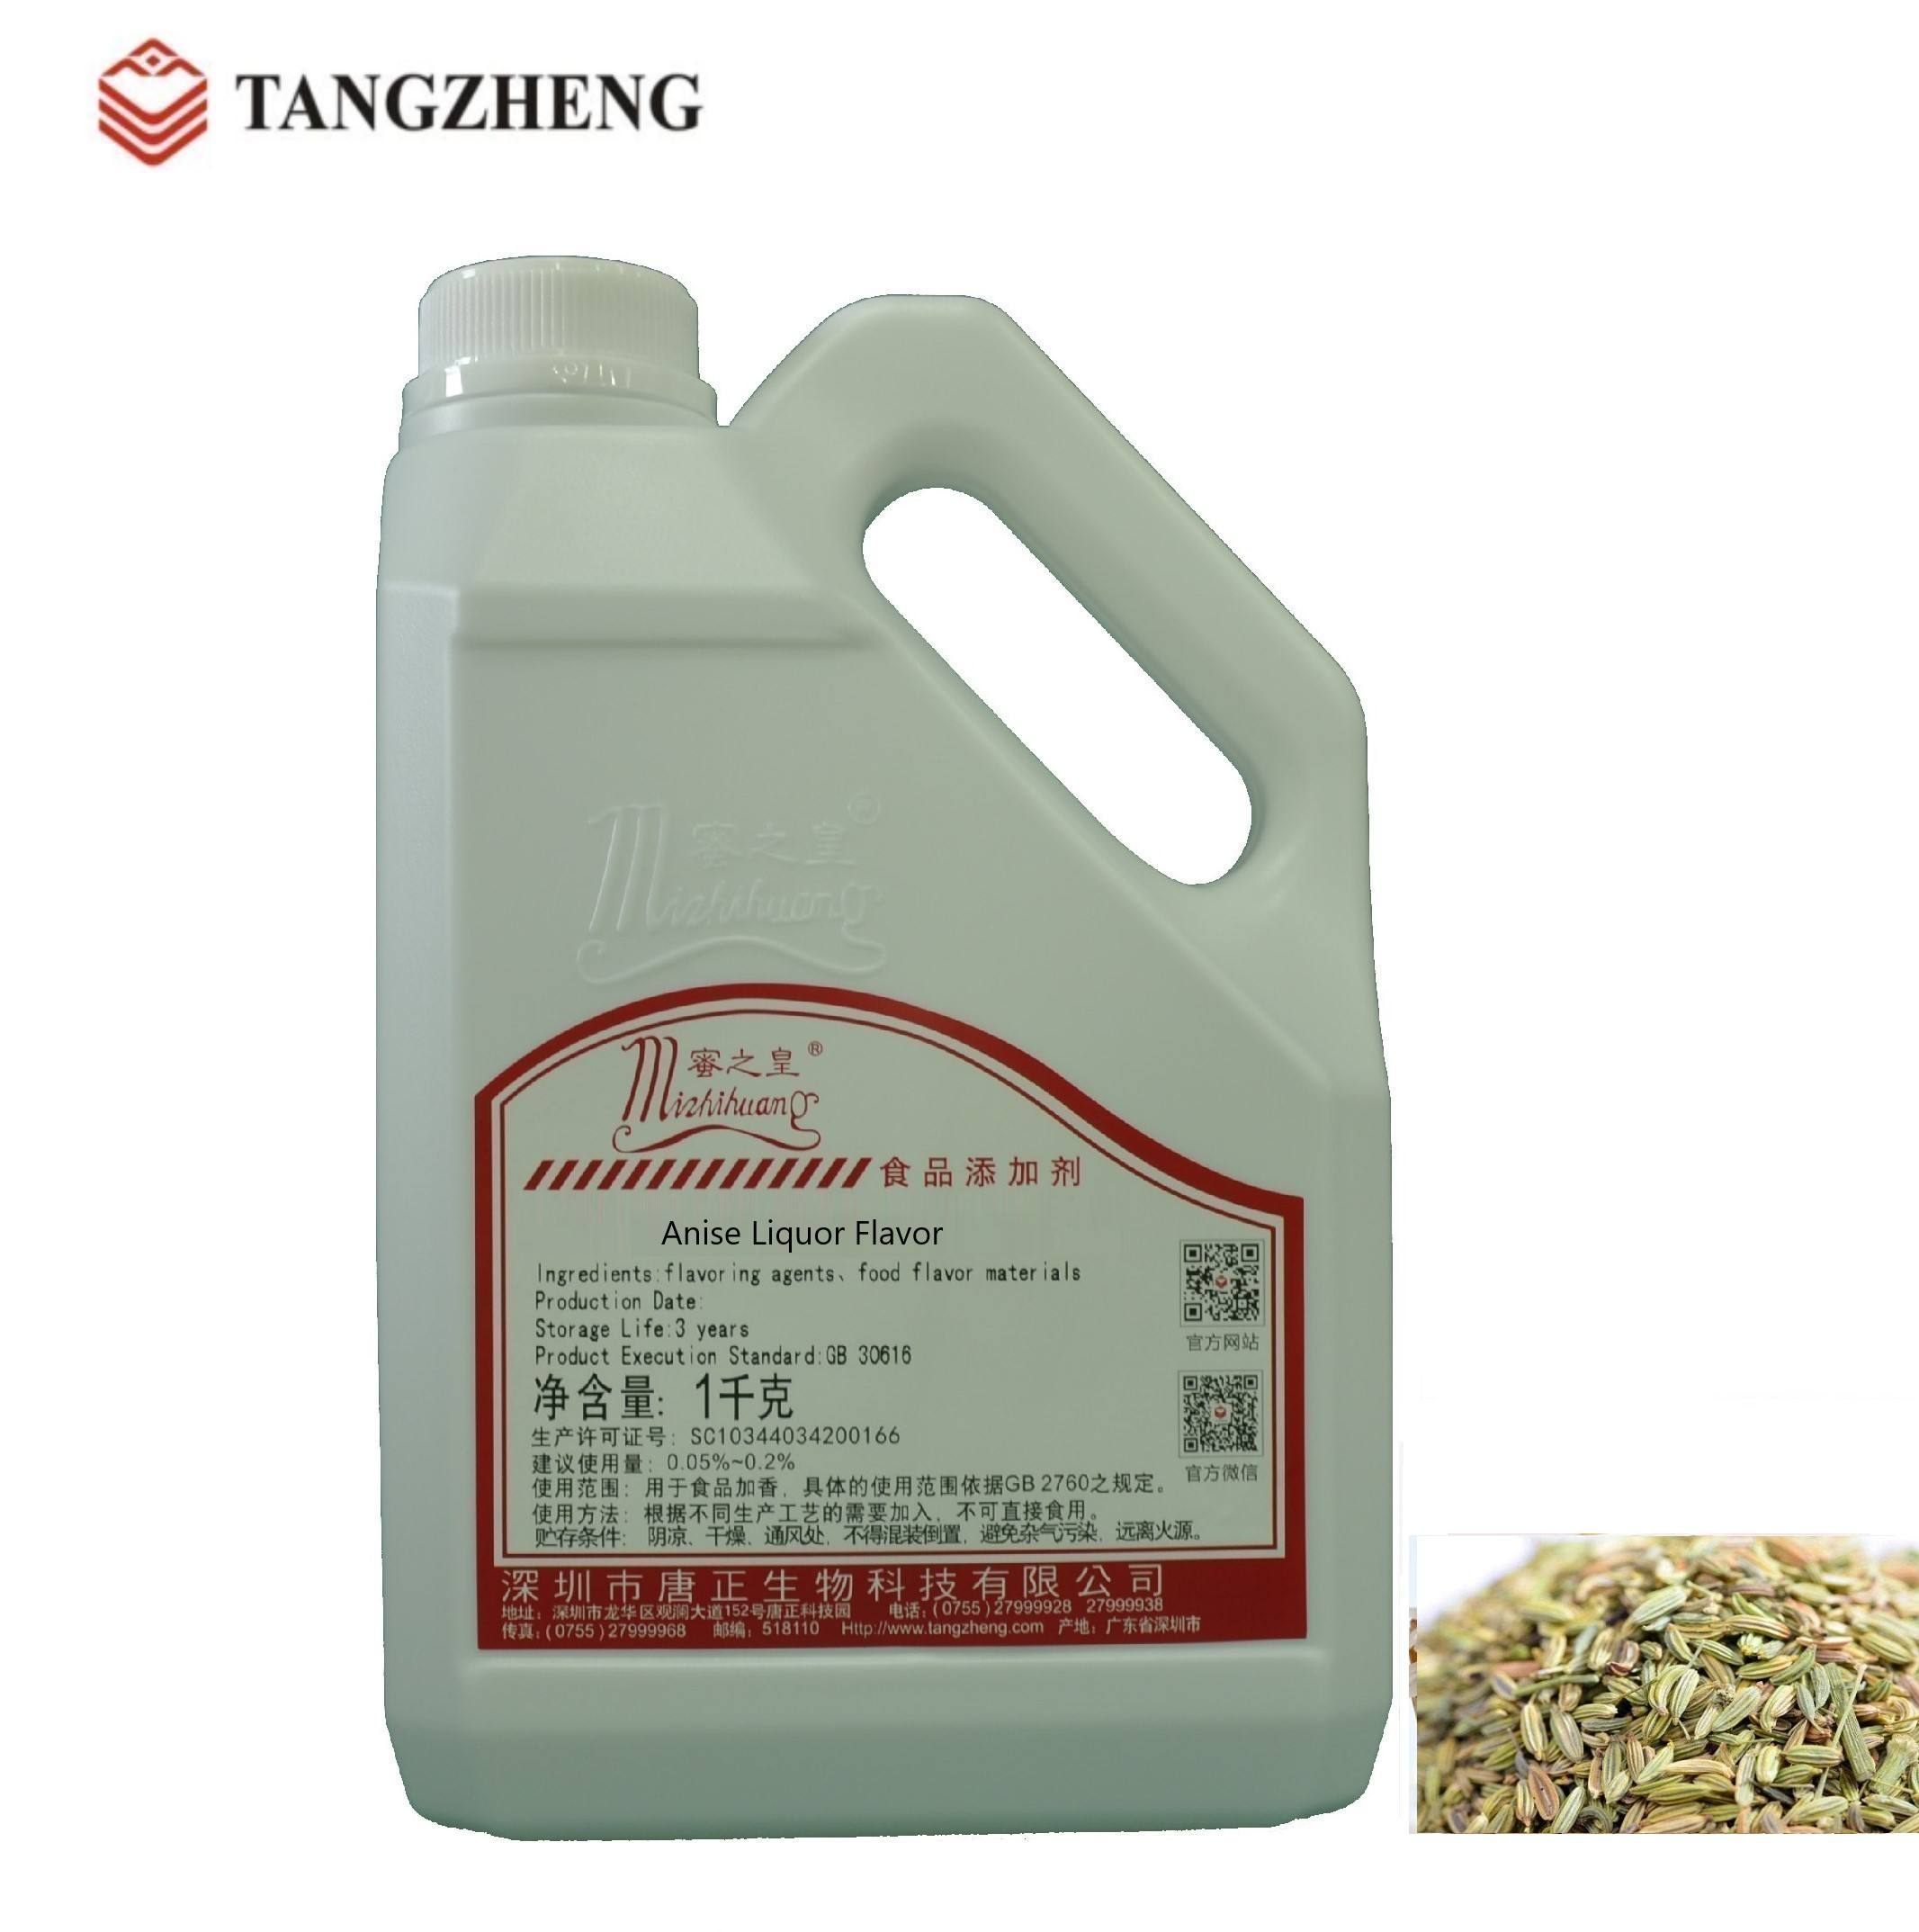 Alcohol Beverage Flavour Concentrate Anise Flavored Liquor Flavor